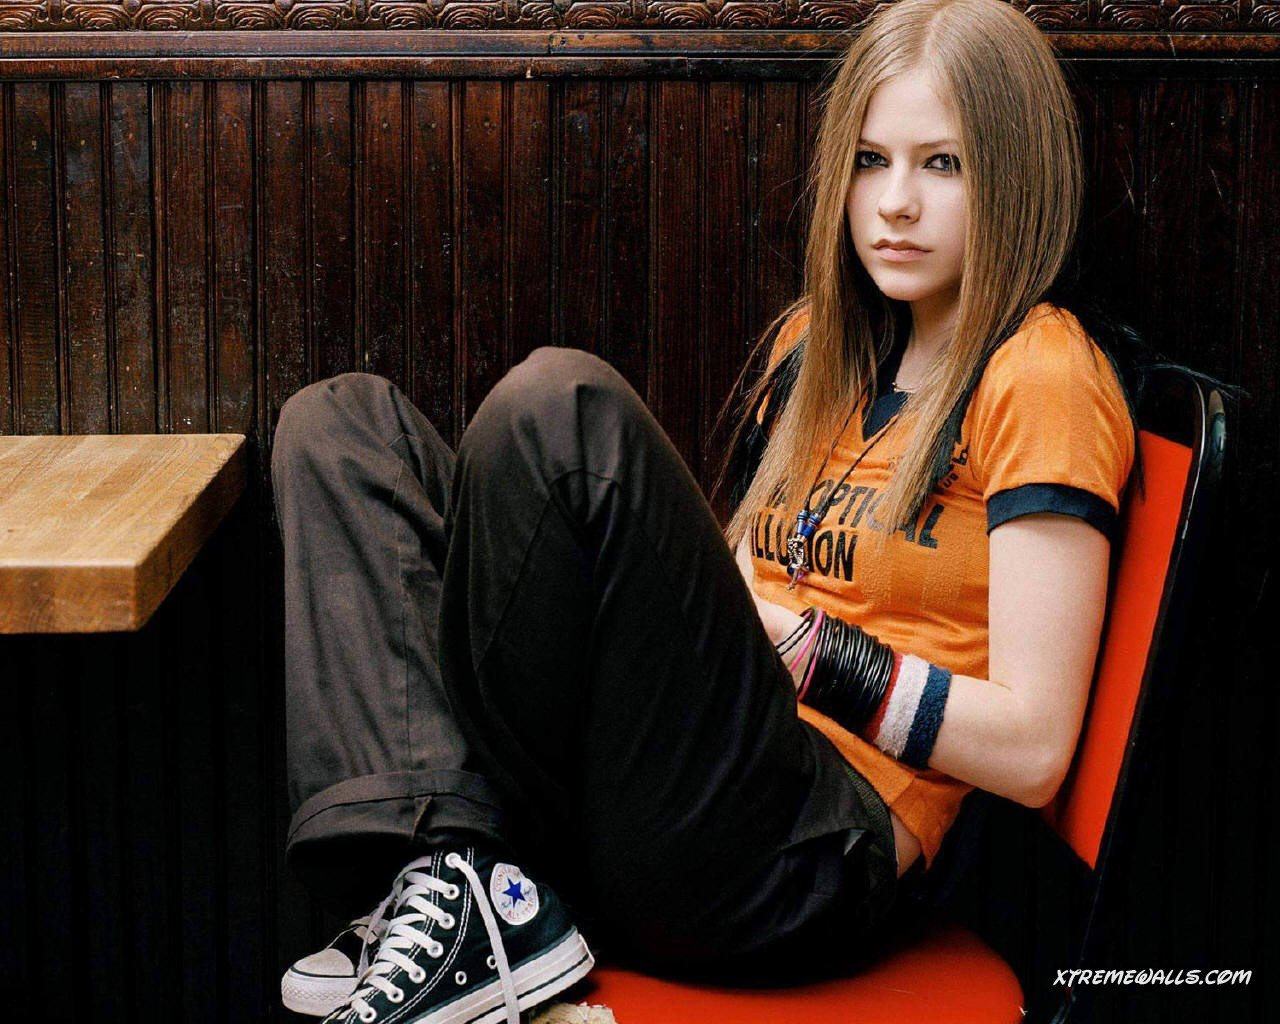 http://shoesbrend.ru/images/upload/avril-lavigne-078-06.jpg